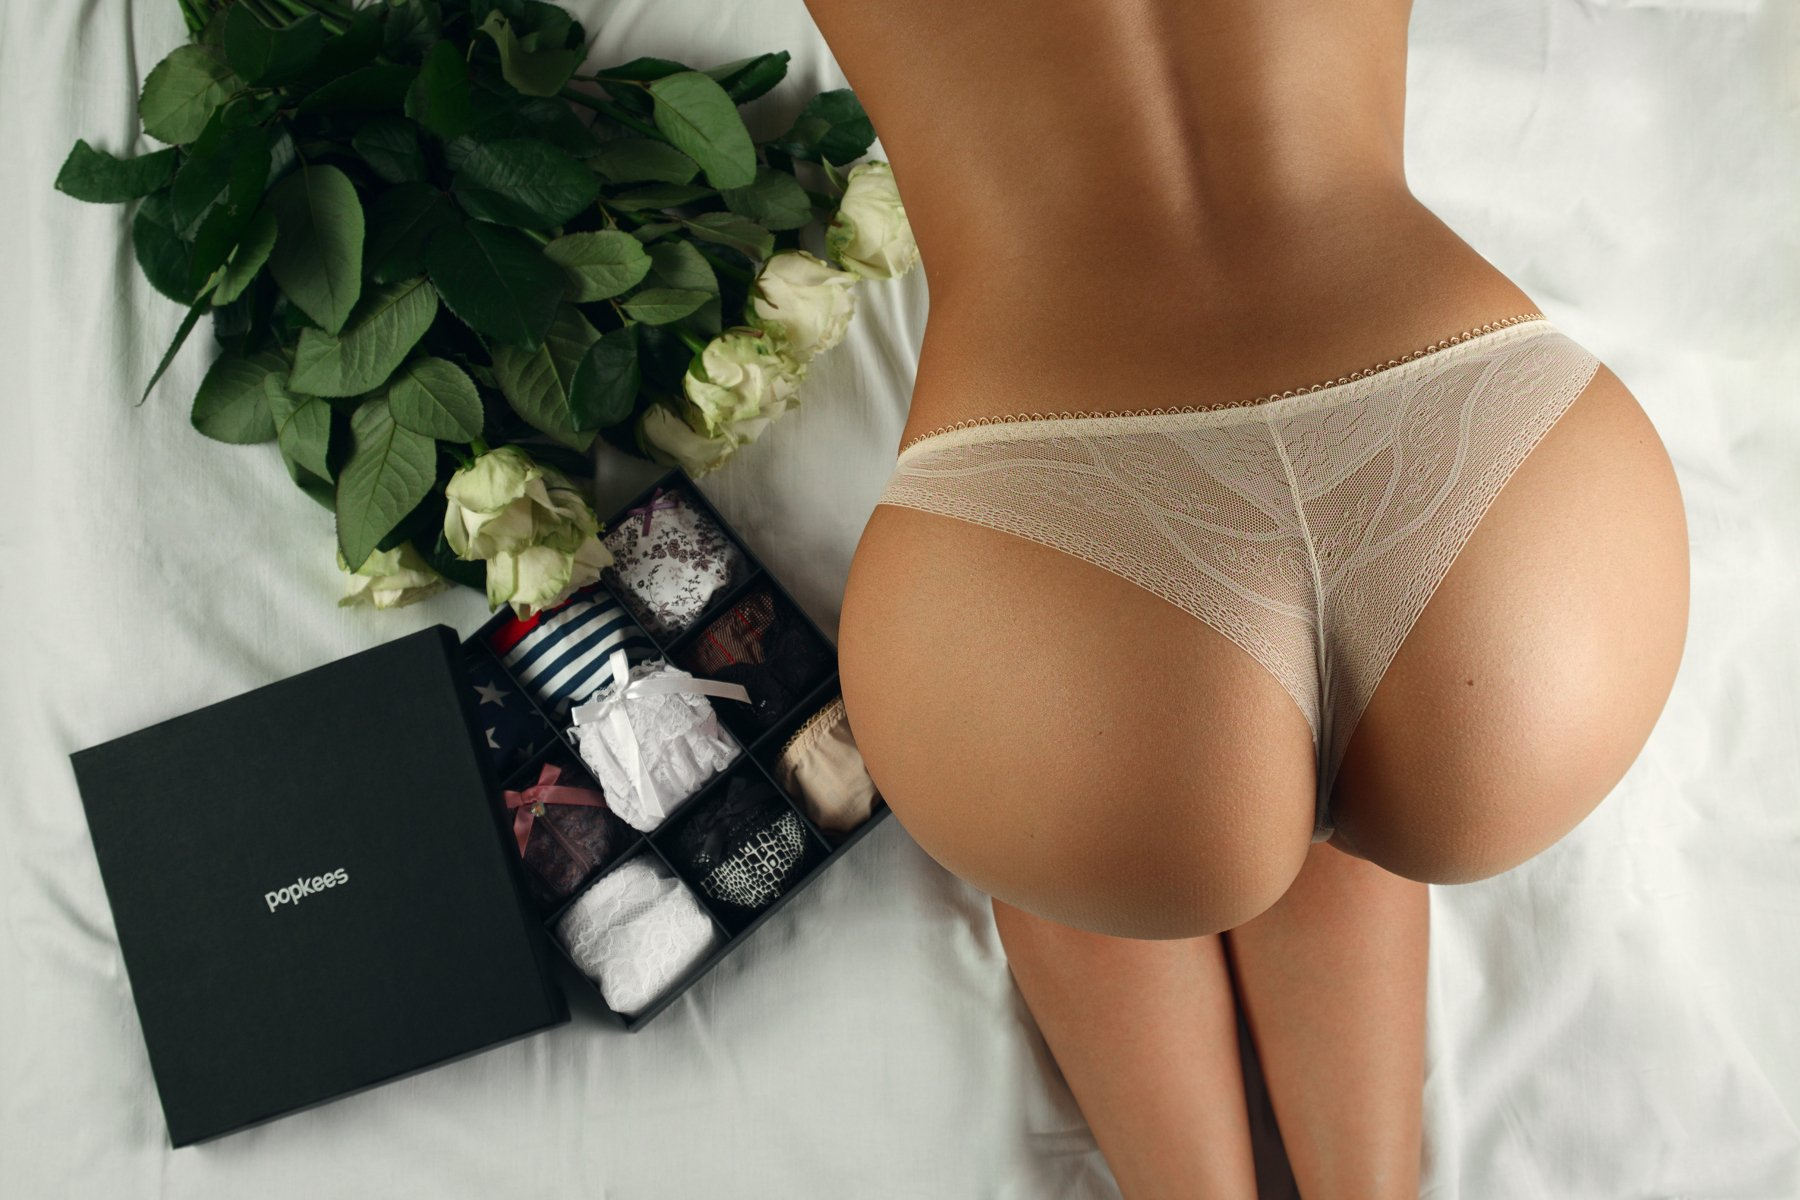 popkees, ass, butt, advertising, underpants, pants, underwear, sale, sexy, Роман Филиппов